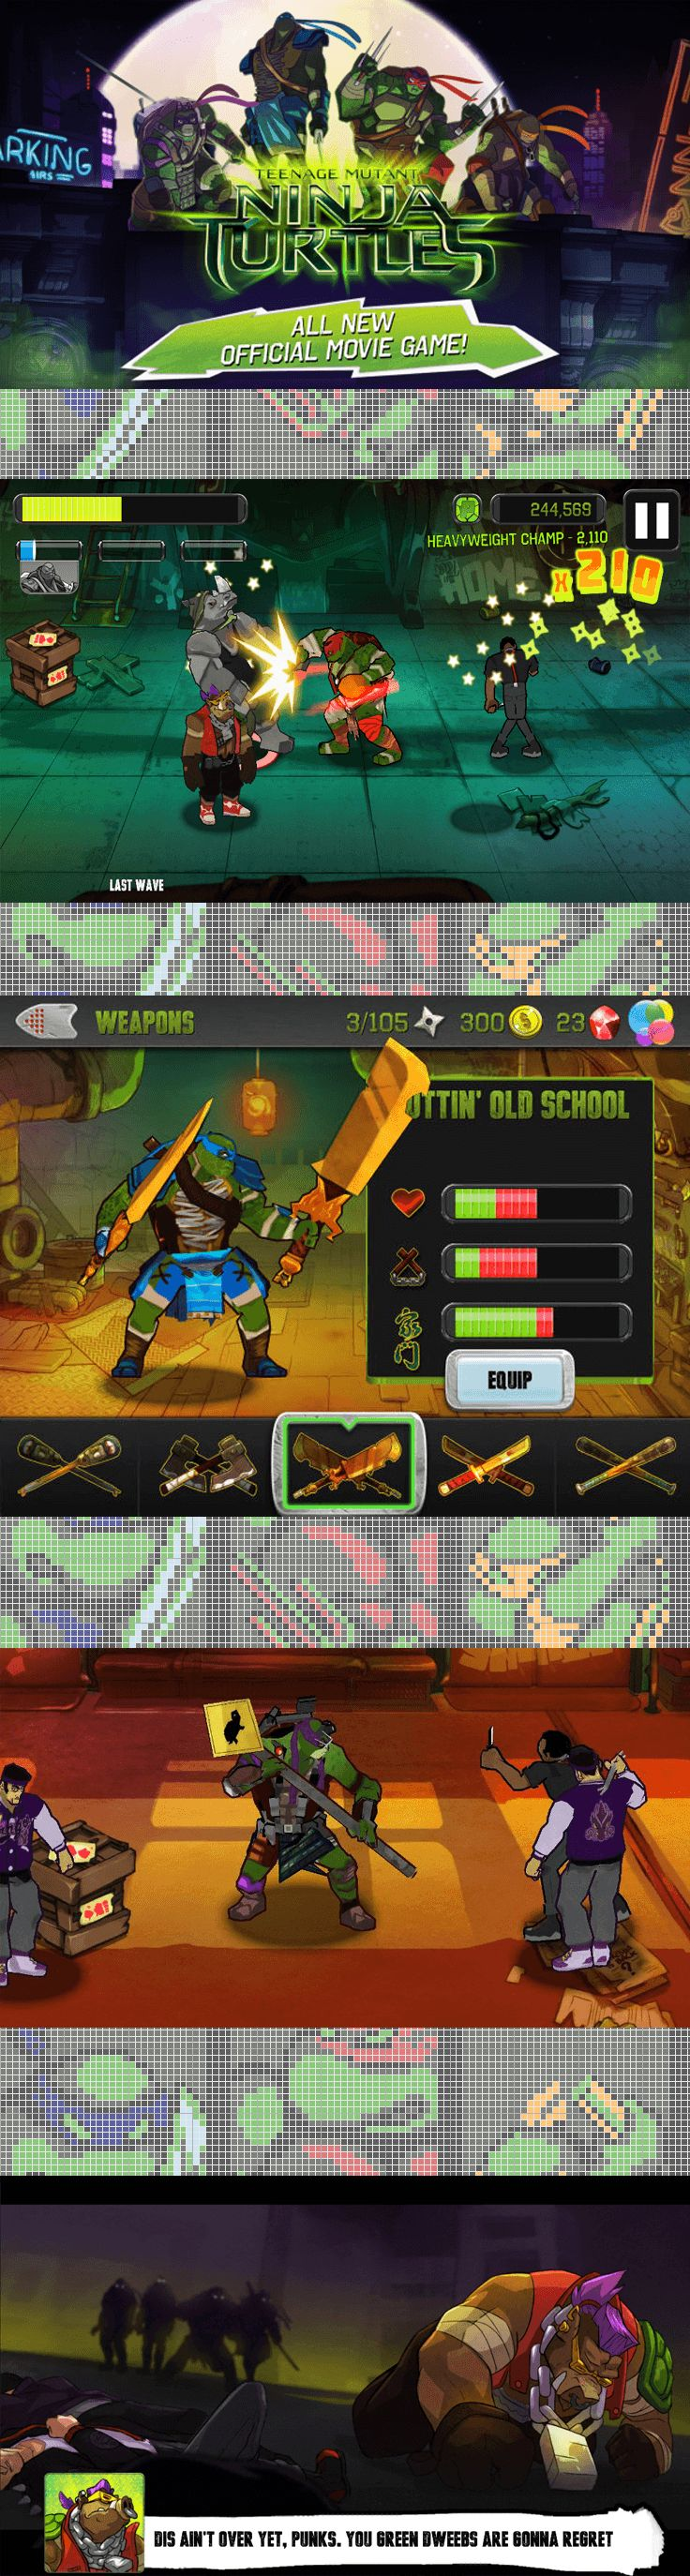 Kick Some Shell in This New TMNT Game For Your Phone.  The new deluxe TMNT Game will featured on Apple devices and it's already getting positive reviews. The graphics and sound are both excellent.  #TMNTMovie #TMNTGame #TMNT #NinjaTurtles